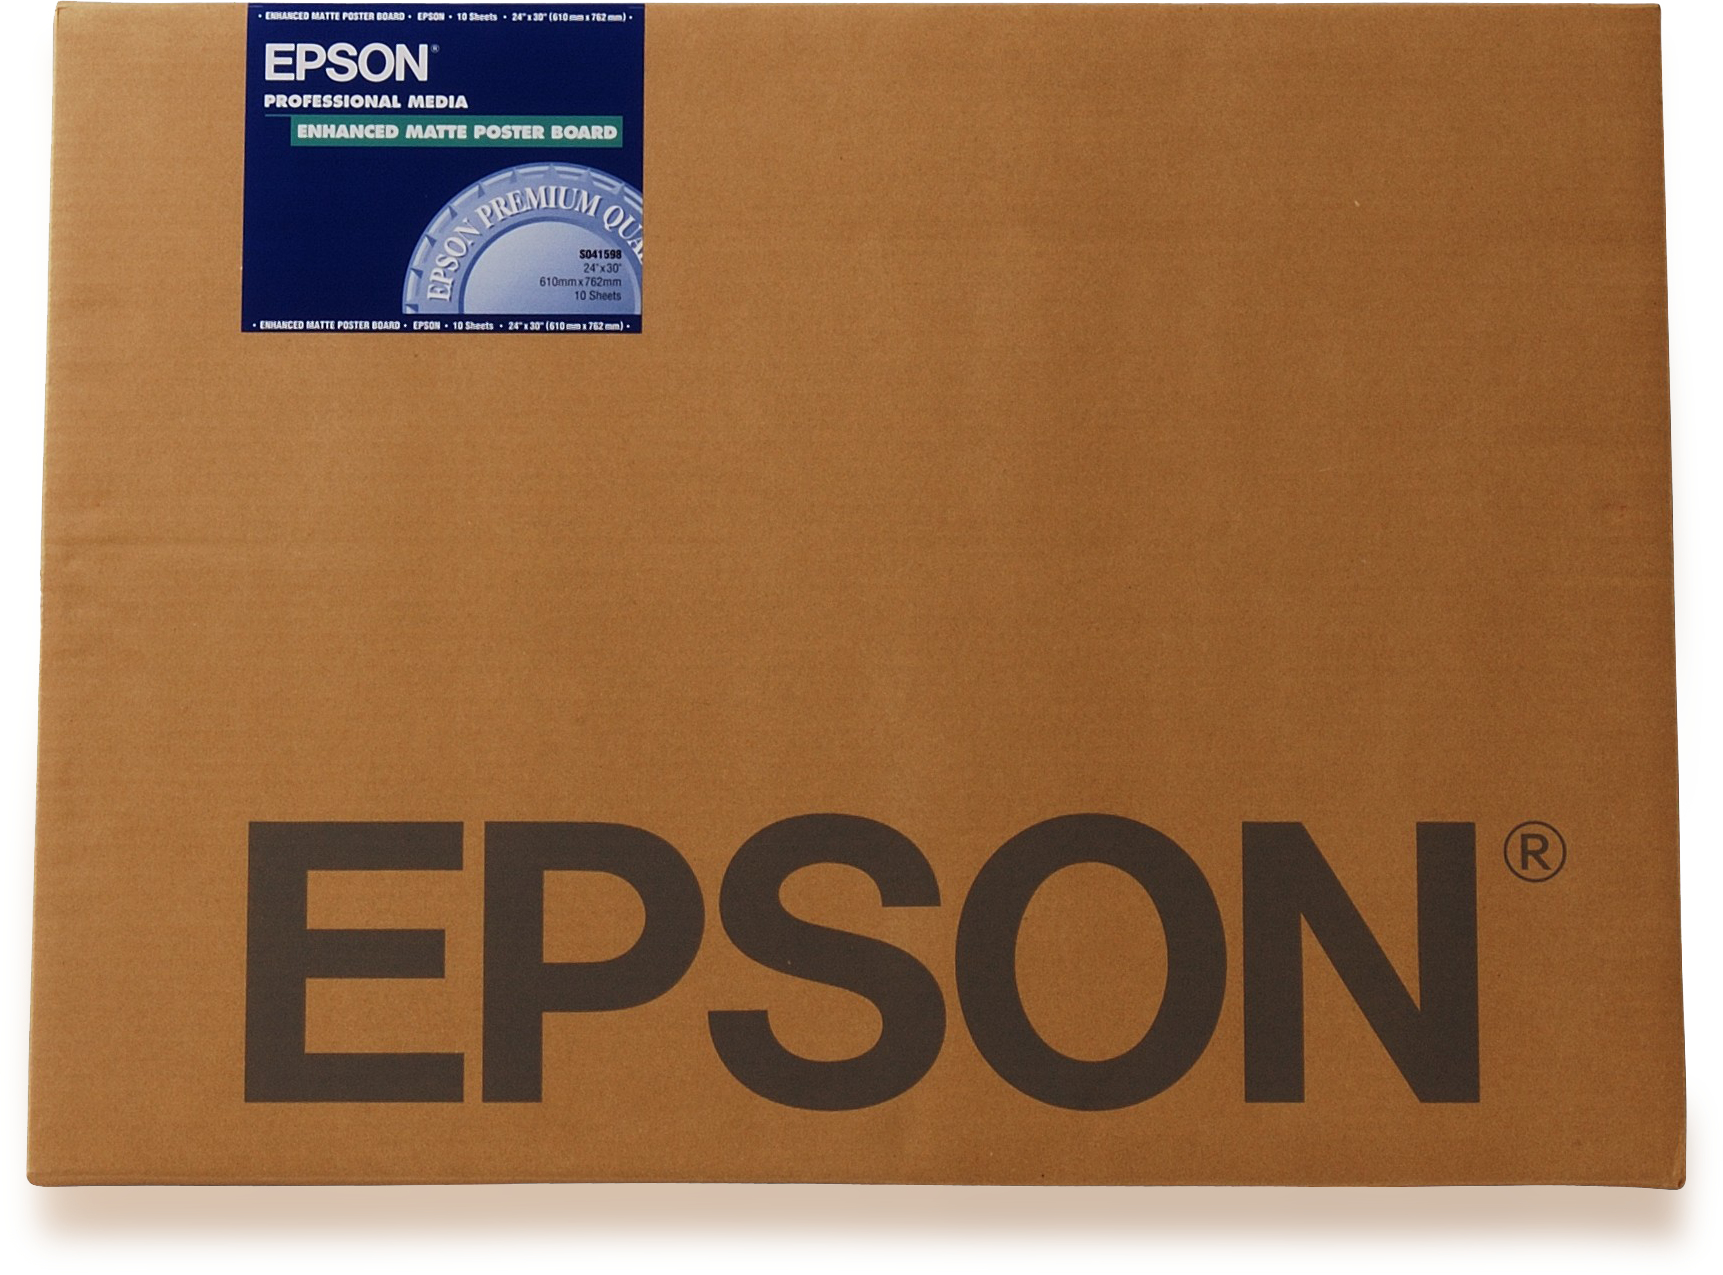 Epson Enhanced Matte Posterboard, DIN A2, 800g/m², 20 Sheets